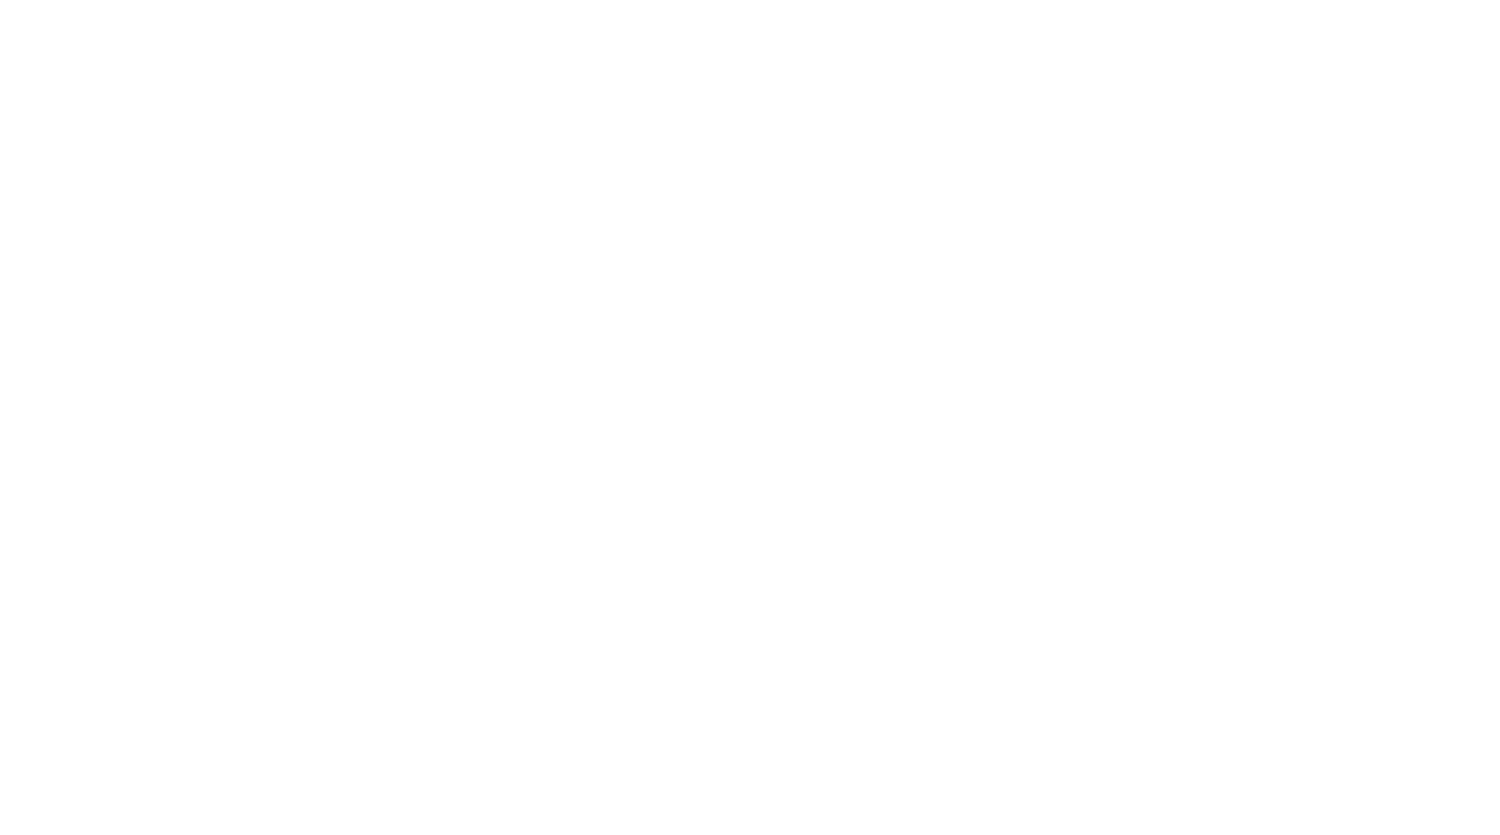 Advanced Materials and Devices, Inc.